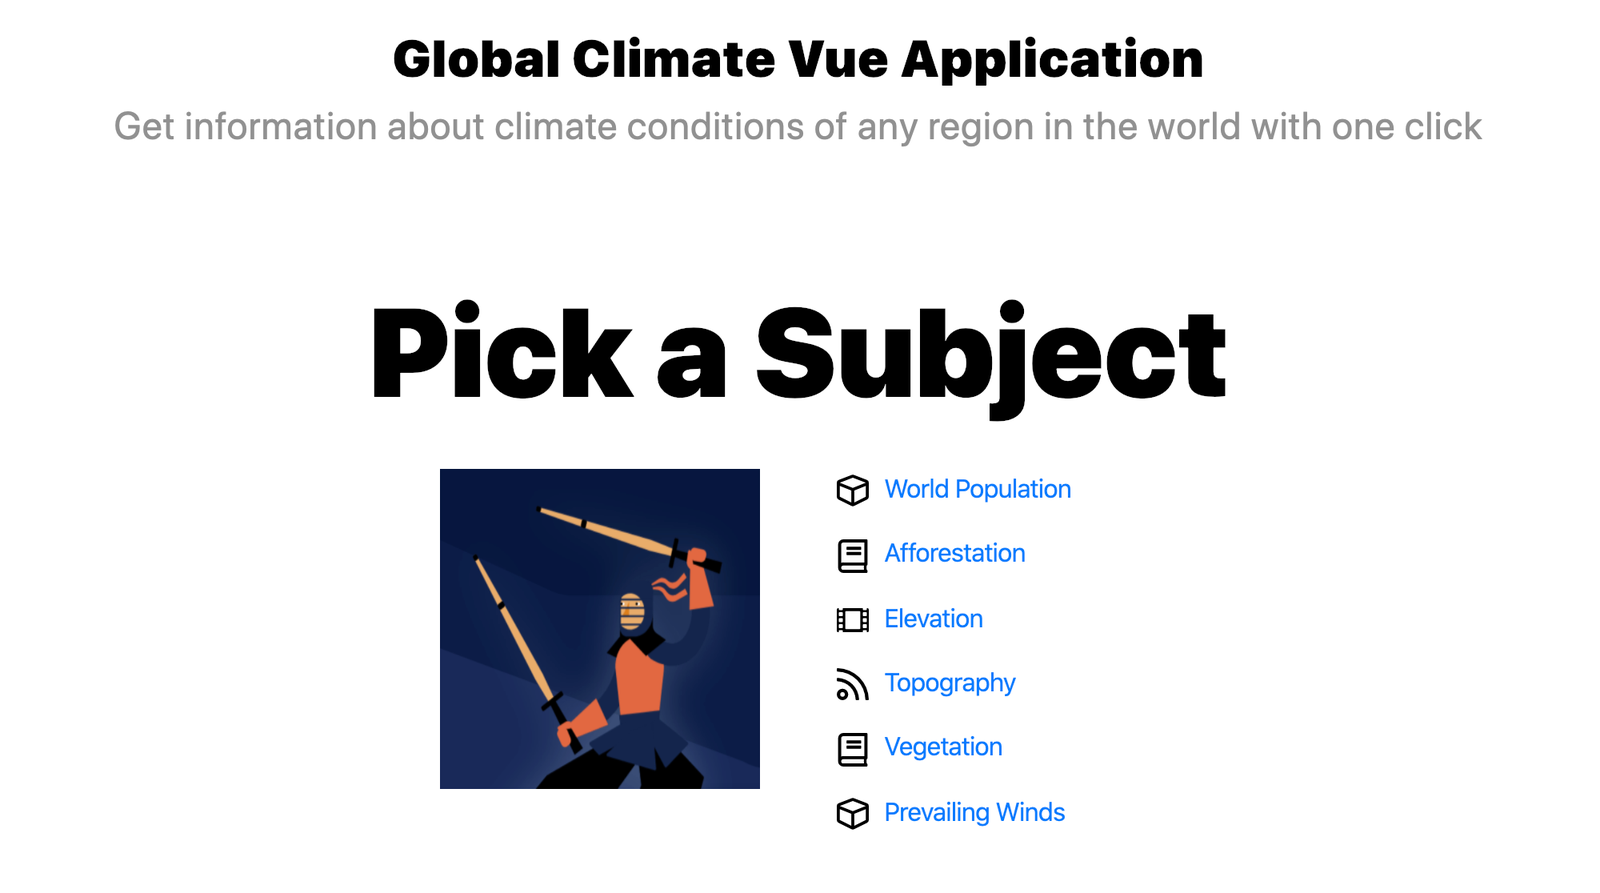 Global Climate Vue Application encourages you to pick a subject: World population, afforestation, elevation, topography, vegetation, or prevailing winds.